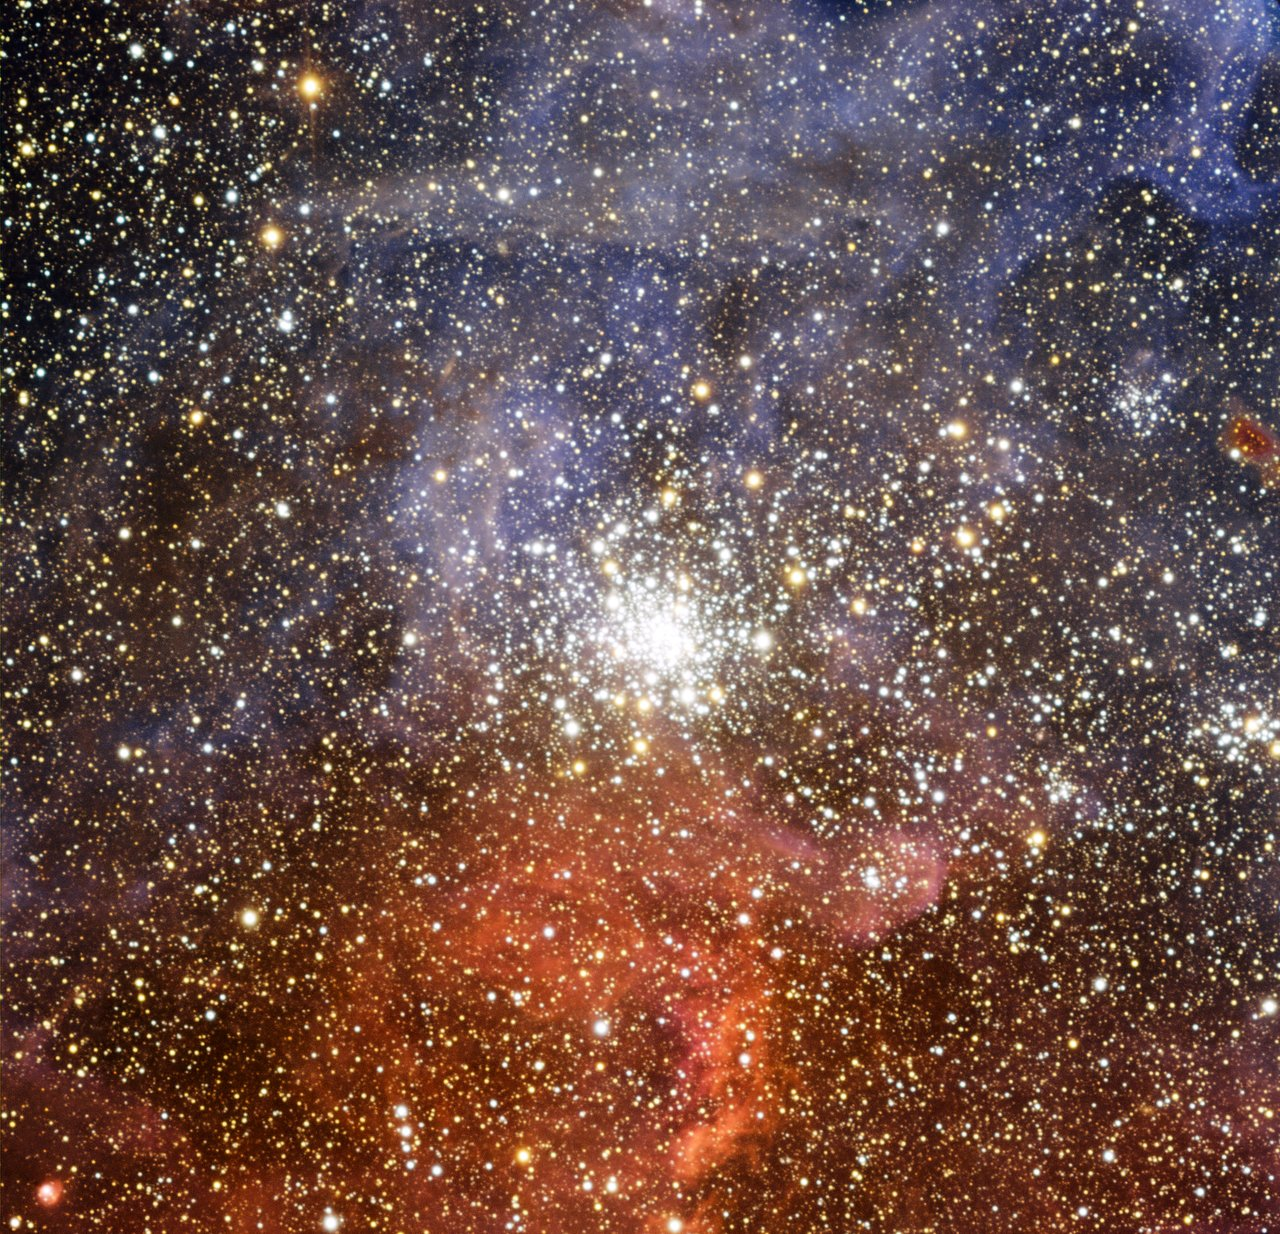 Mounted image 198: The star cluster NGC 2100 in the Large Magellanic Cloud